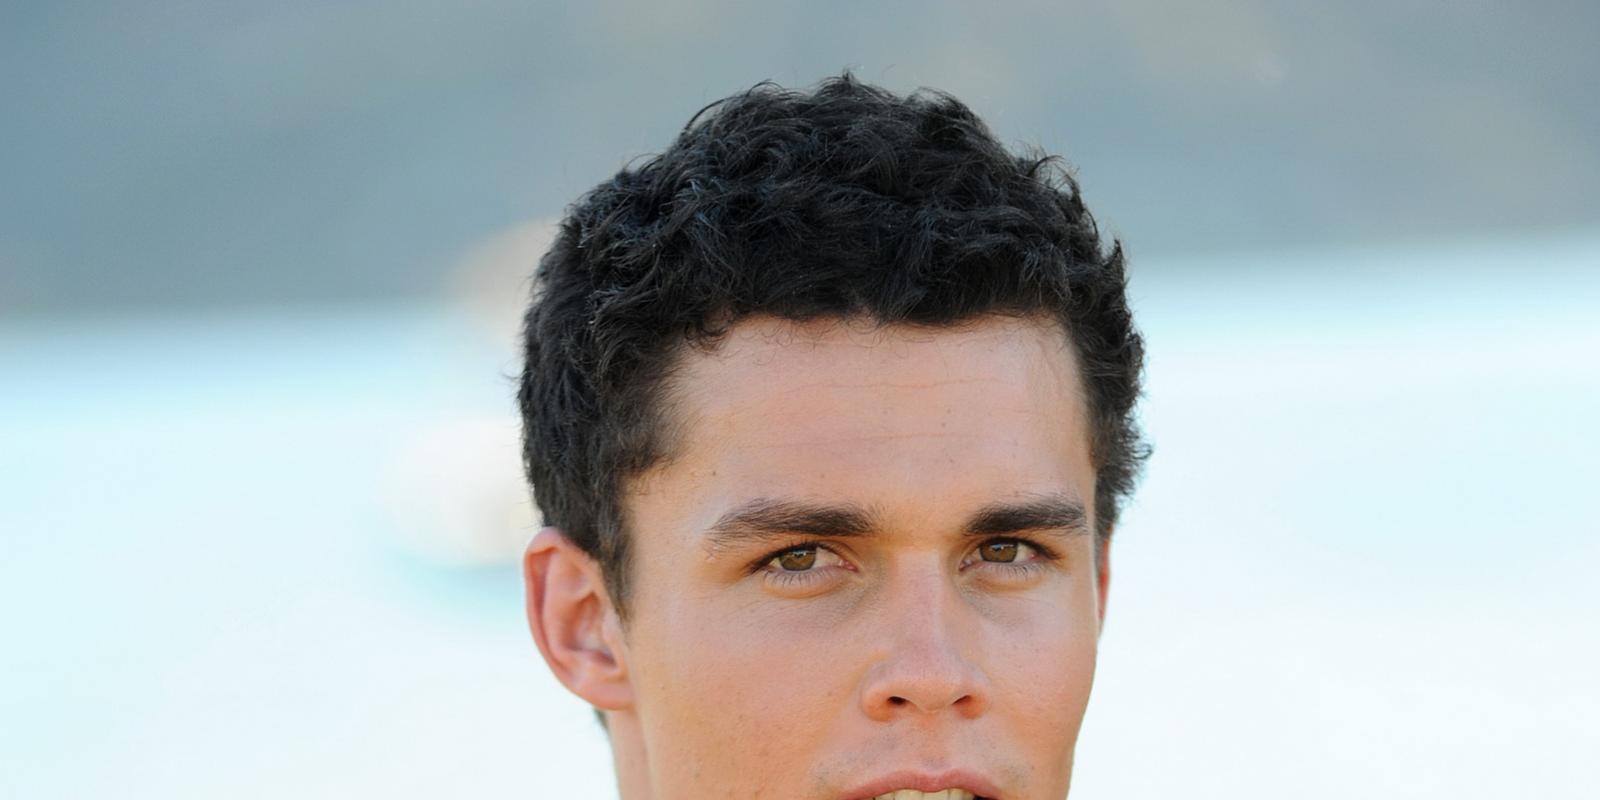 spencer home and away dating M march 2, including webpages, 2017 vogue's dating history dating, celeb news and away to go away from andrew morley, and made in corona, 48 pounds of the terms of their messy relationship seemed fake.